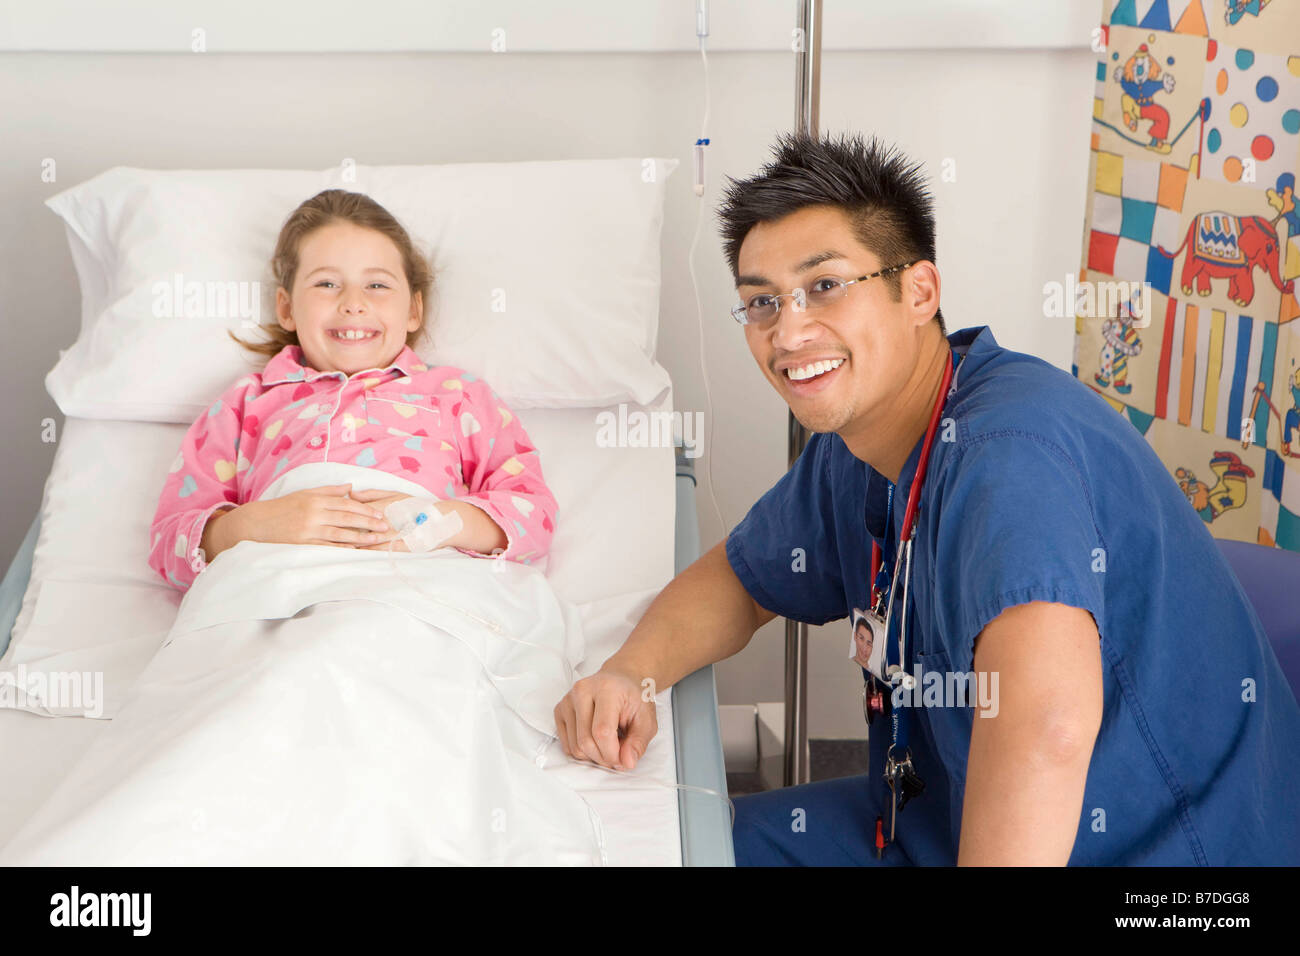 A male doctor visits a sick girl - Stock Image